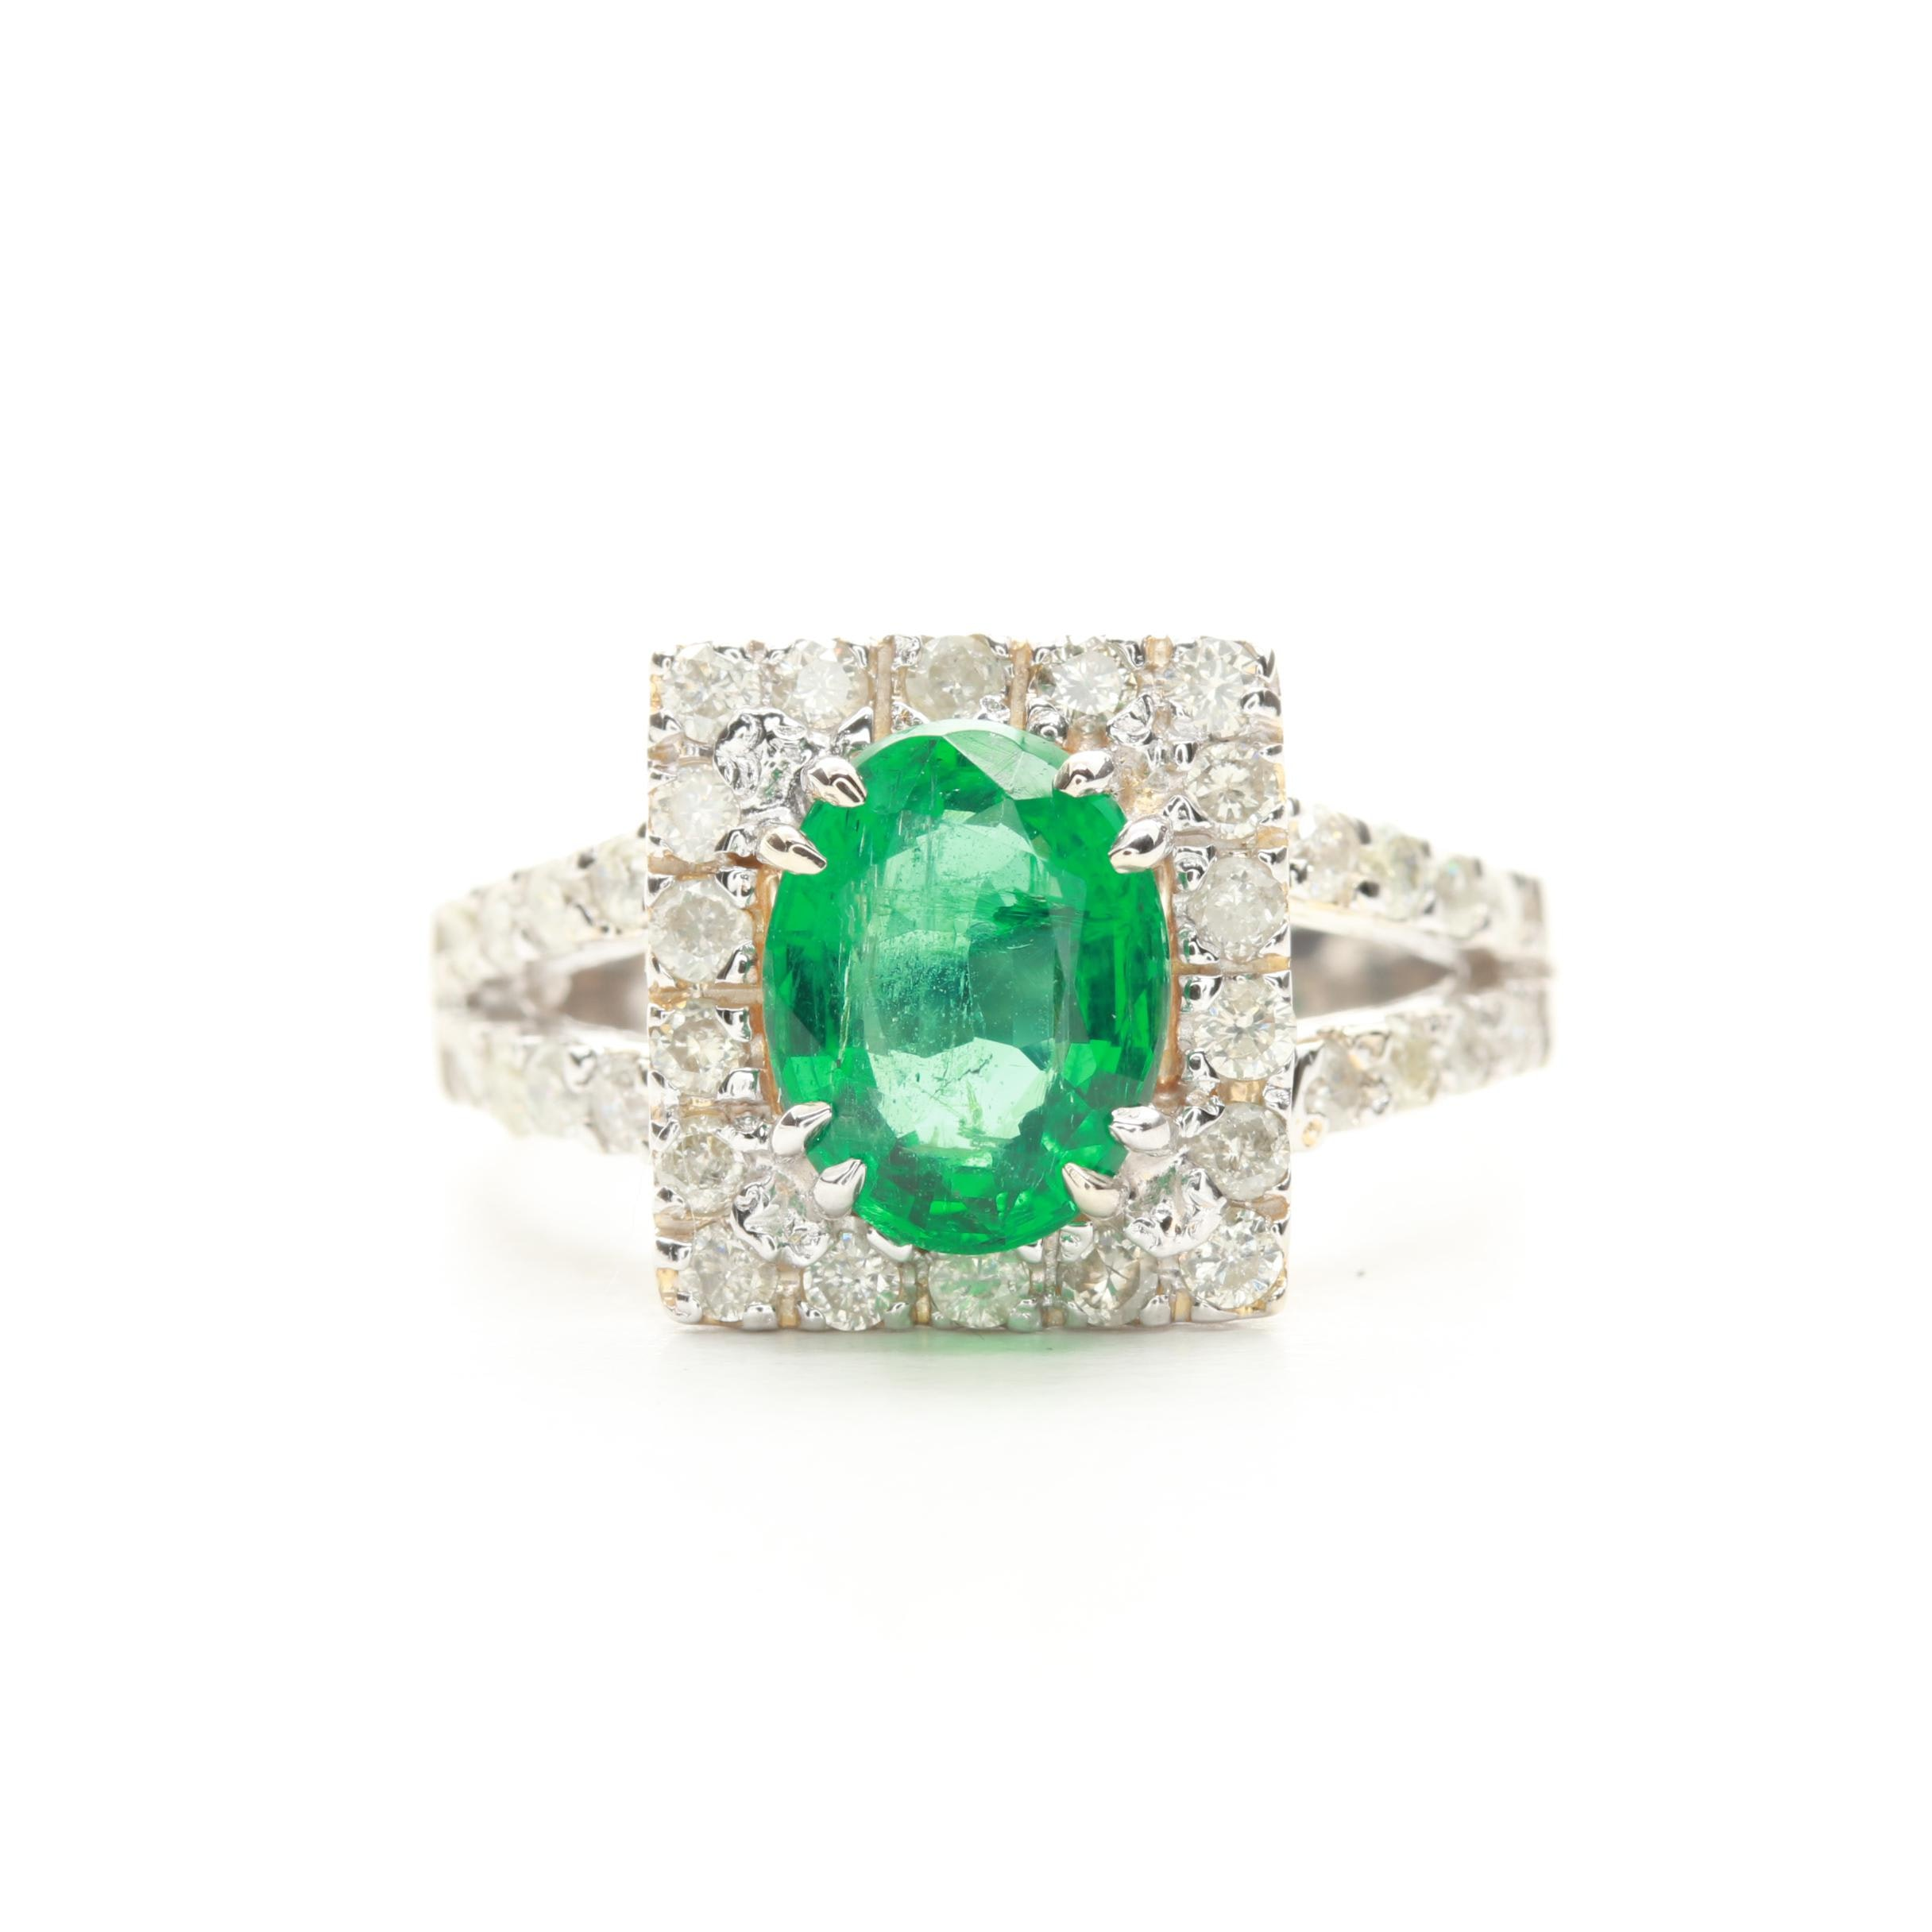 14K White Gold 1.22 CT Emerald and Diamond Ring